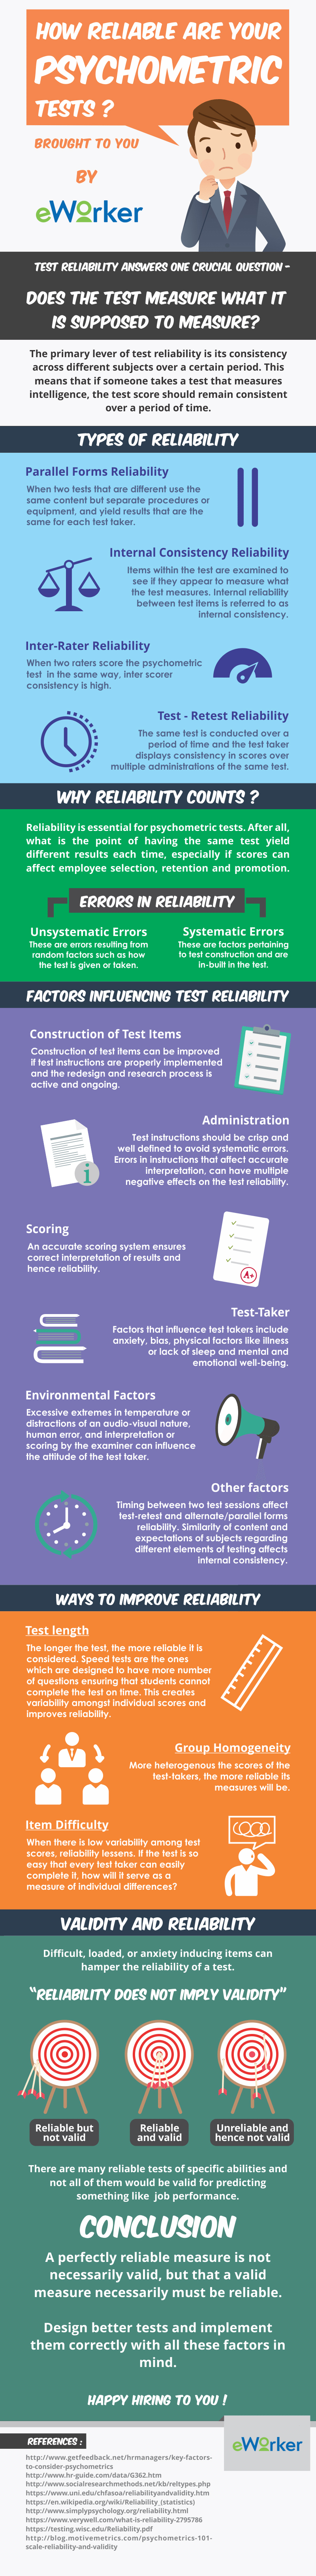 How Reliable Are Psychometric Tests image